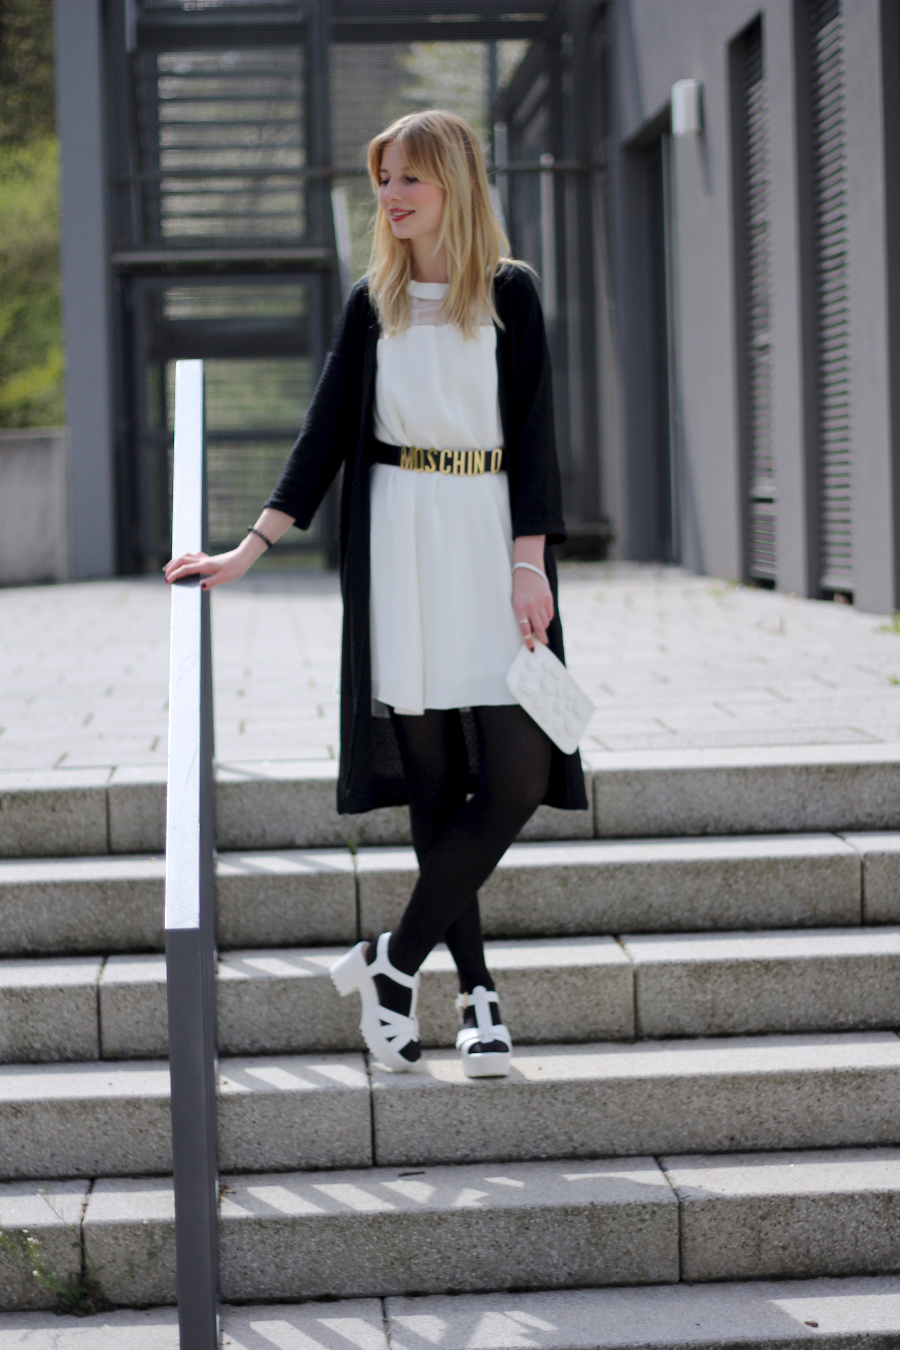 outfit-black-white-dress-moschino-asos-riverisland-sandals-shoes-clutch-girly-city-chic